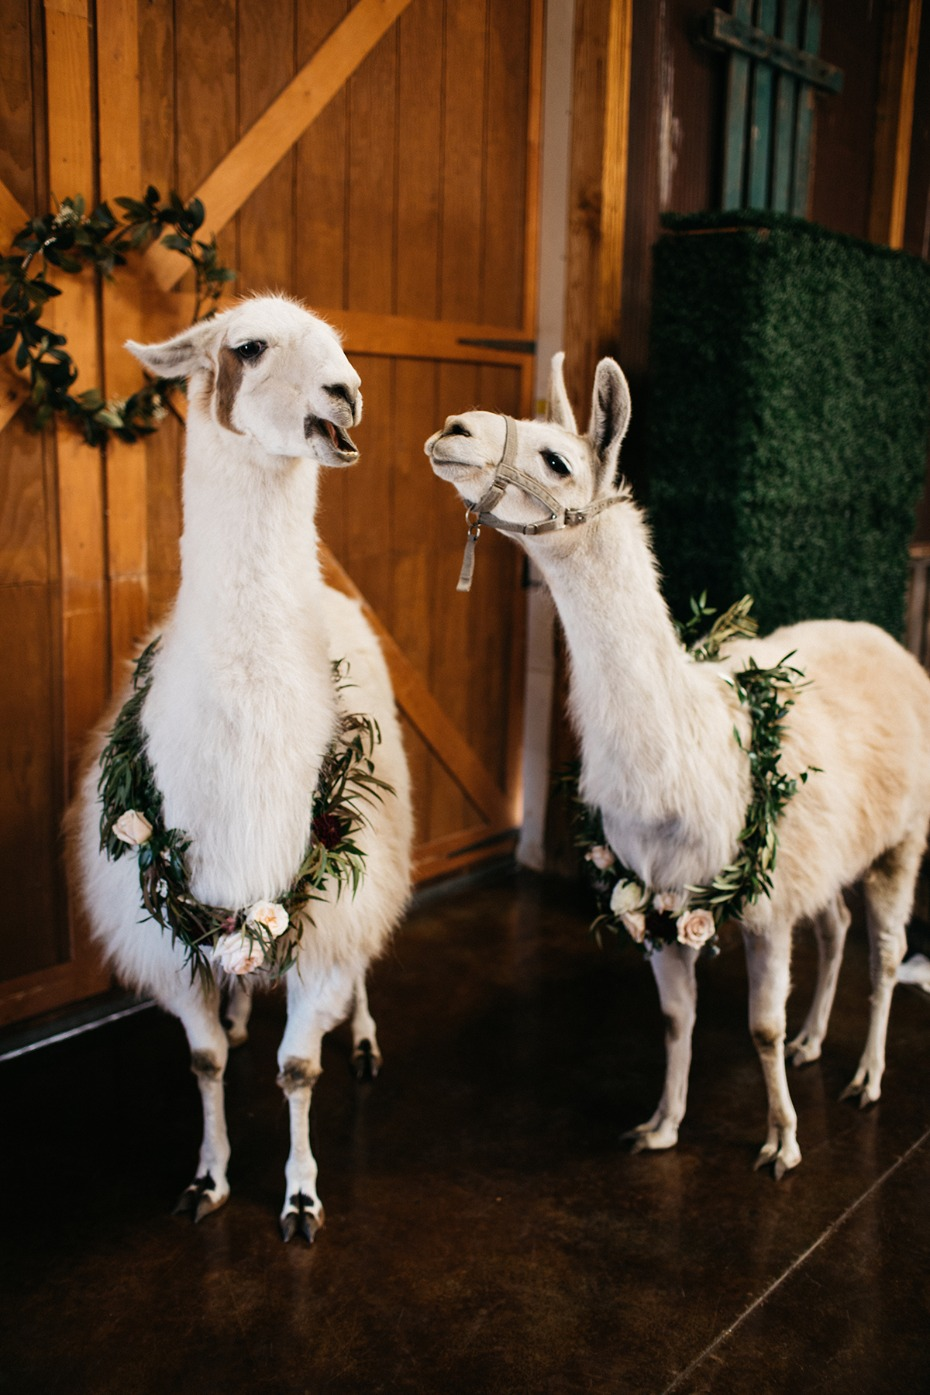 lets get this llama wedding started